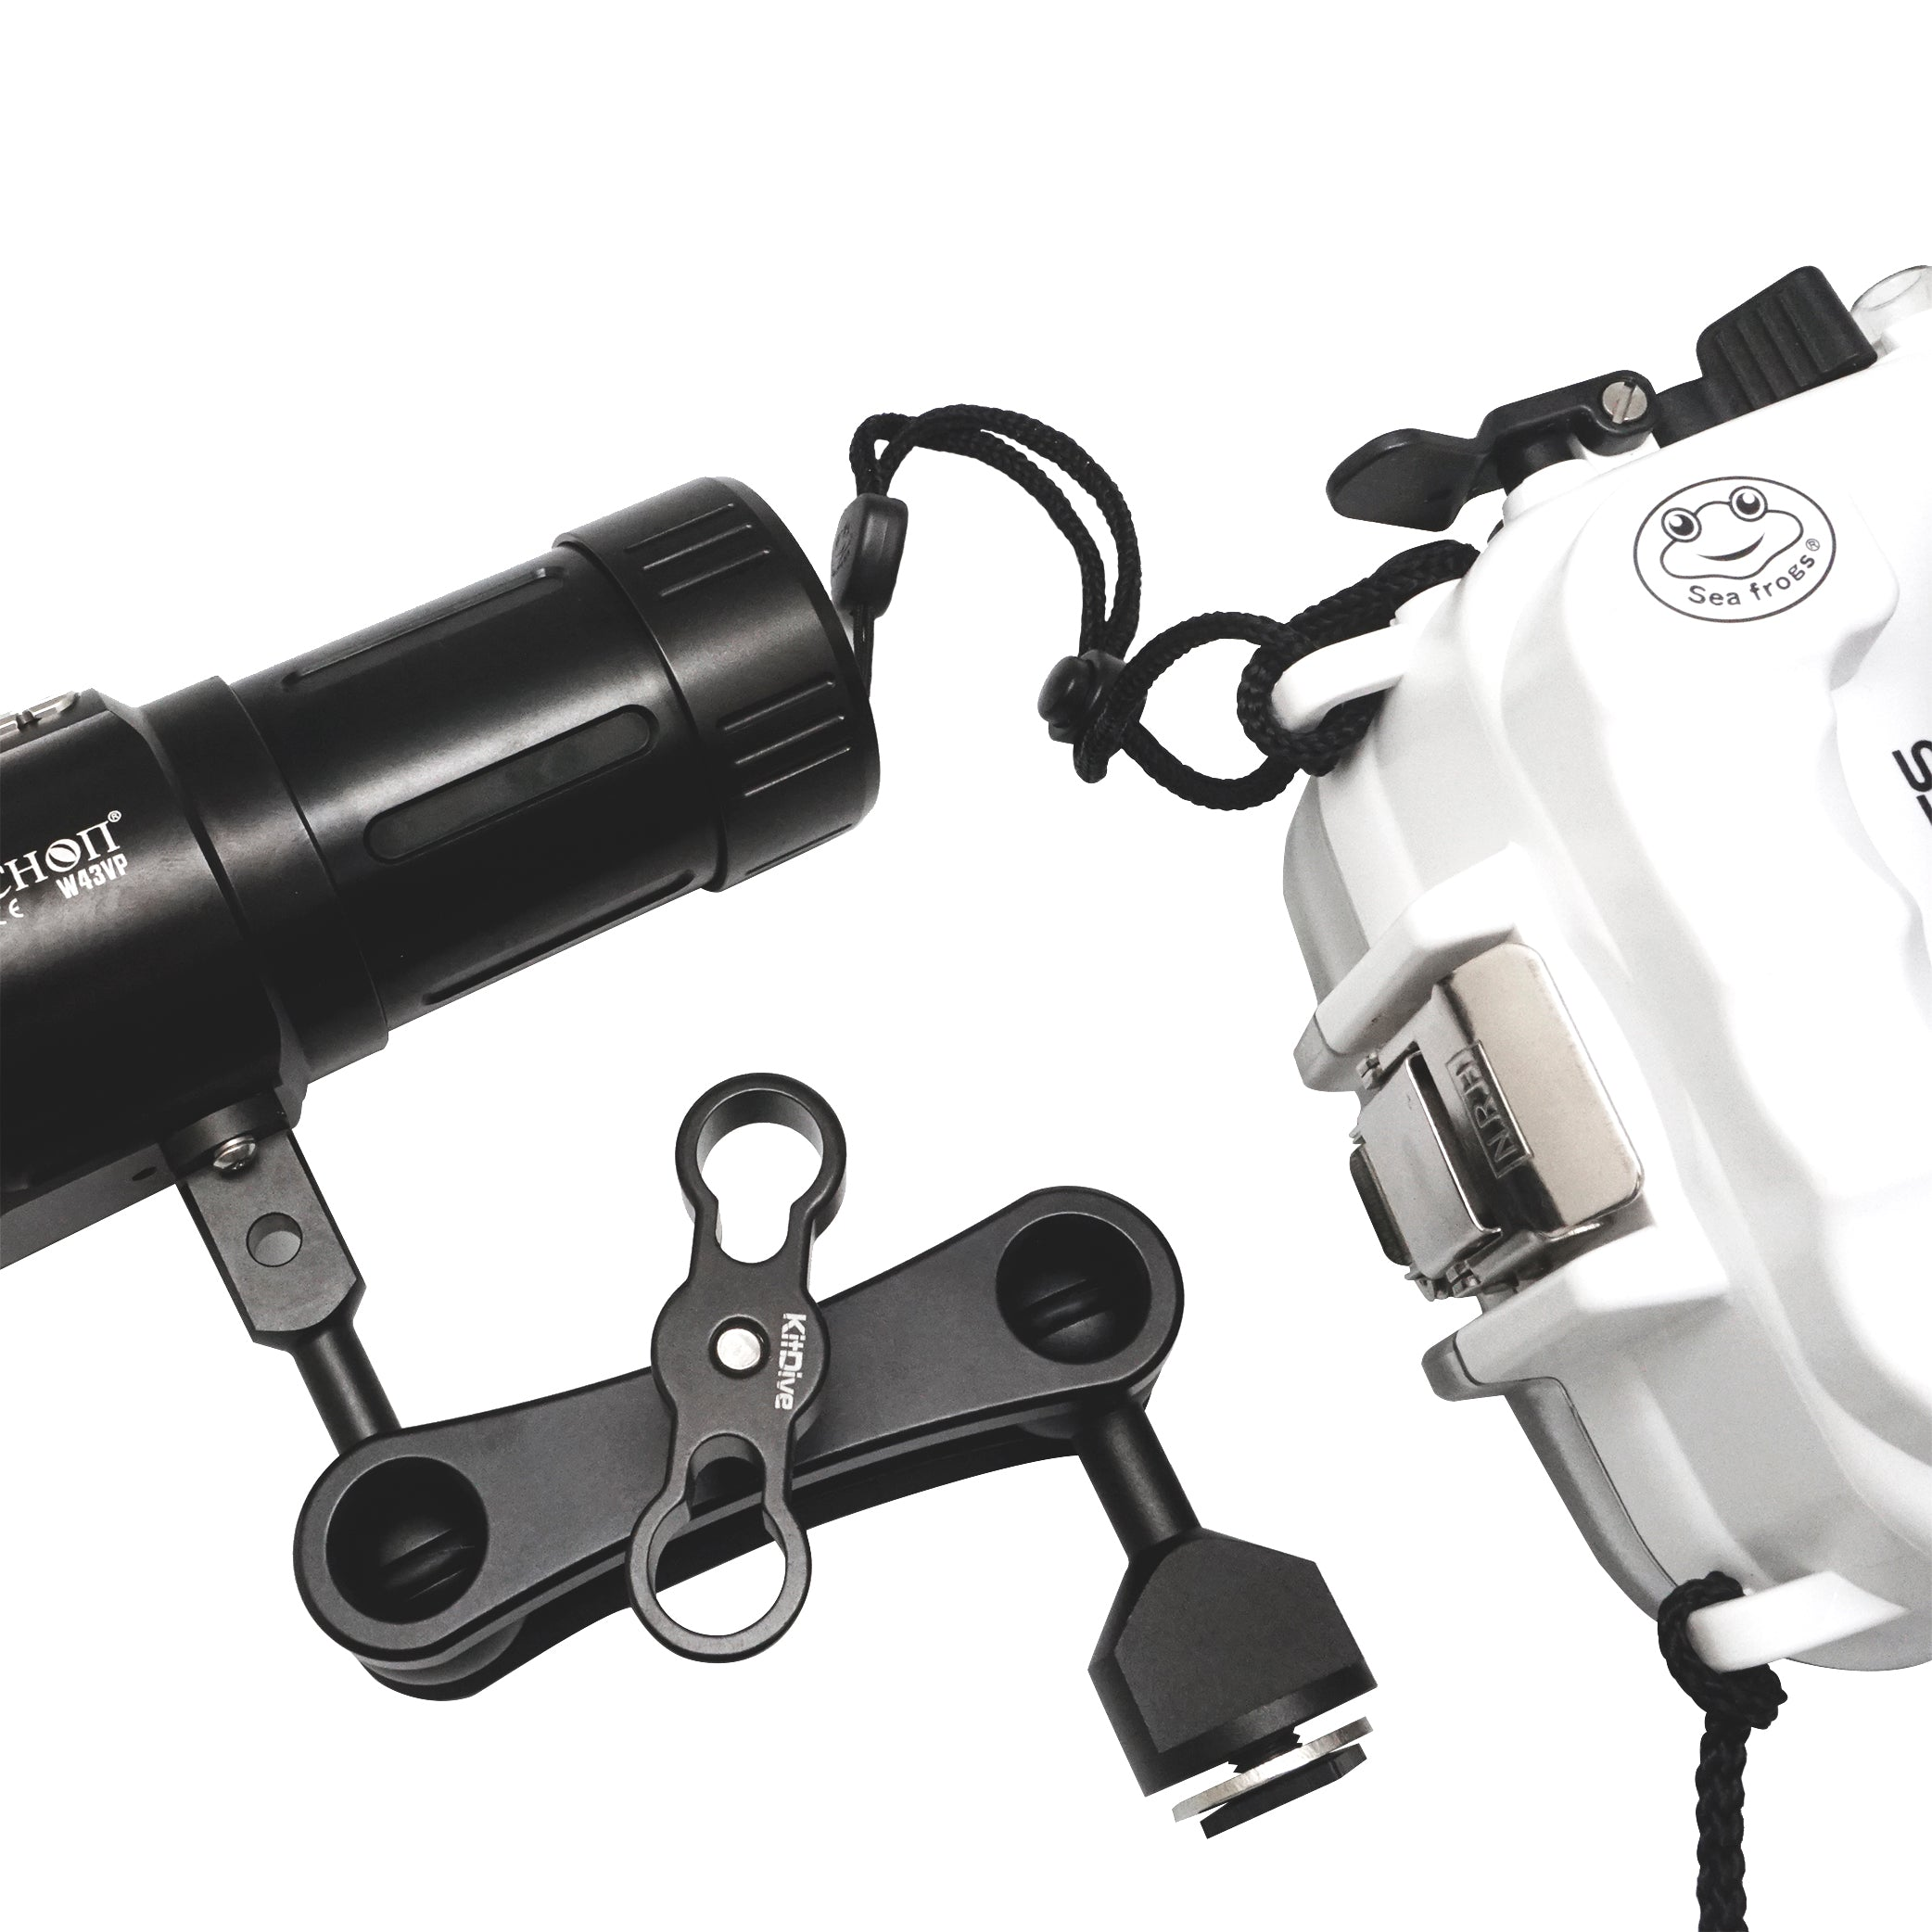 ARCHON W43VP 5200 Lumens LED Light & MS1 Underwater Video light / Strobe mounting system - A6XXX SALTED LINE